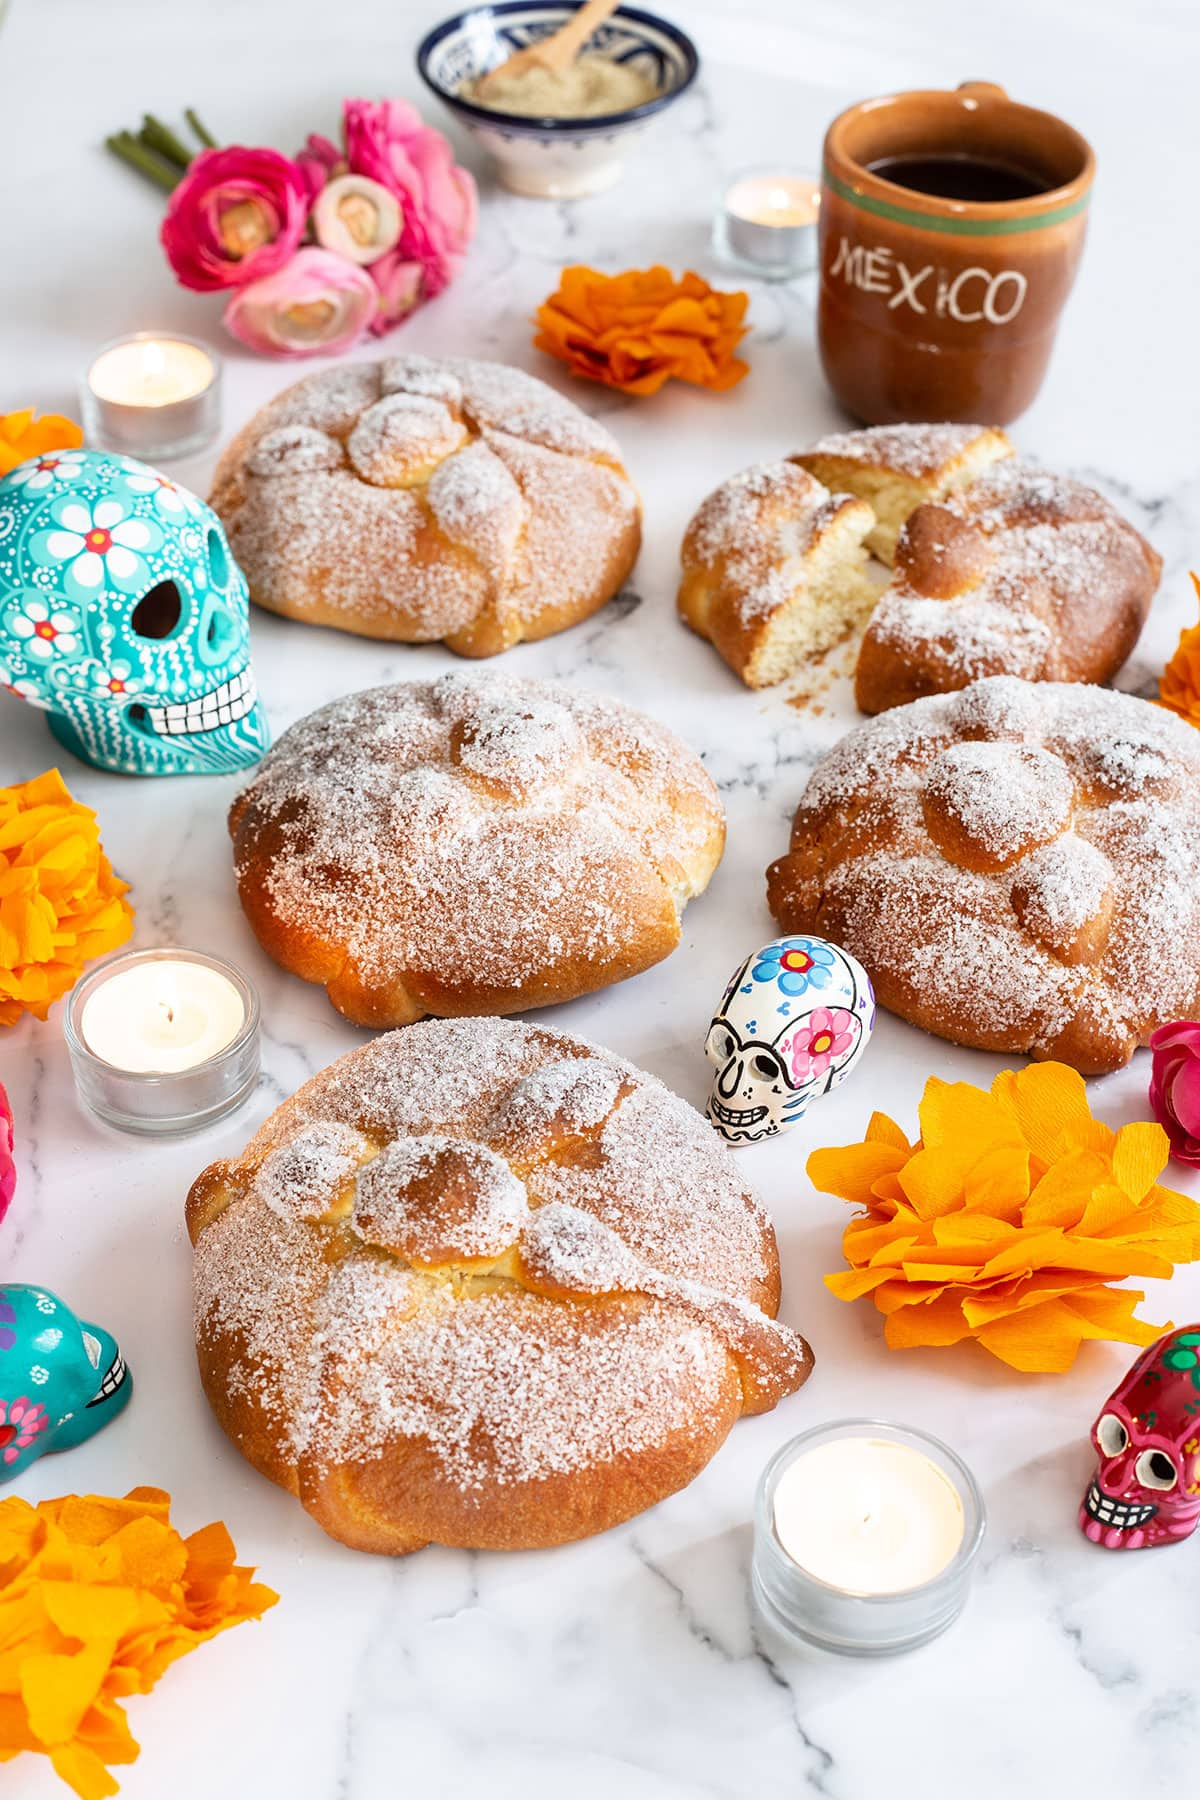 Mexican pan de muerto displayed with various decorations.